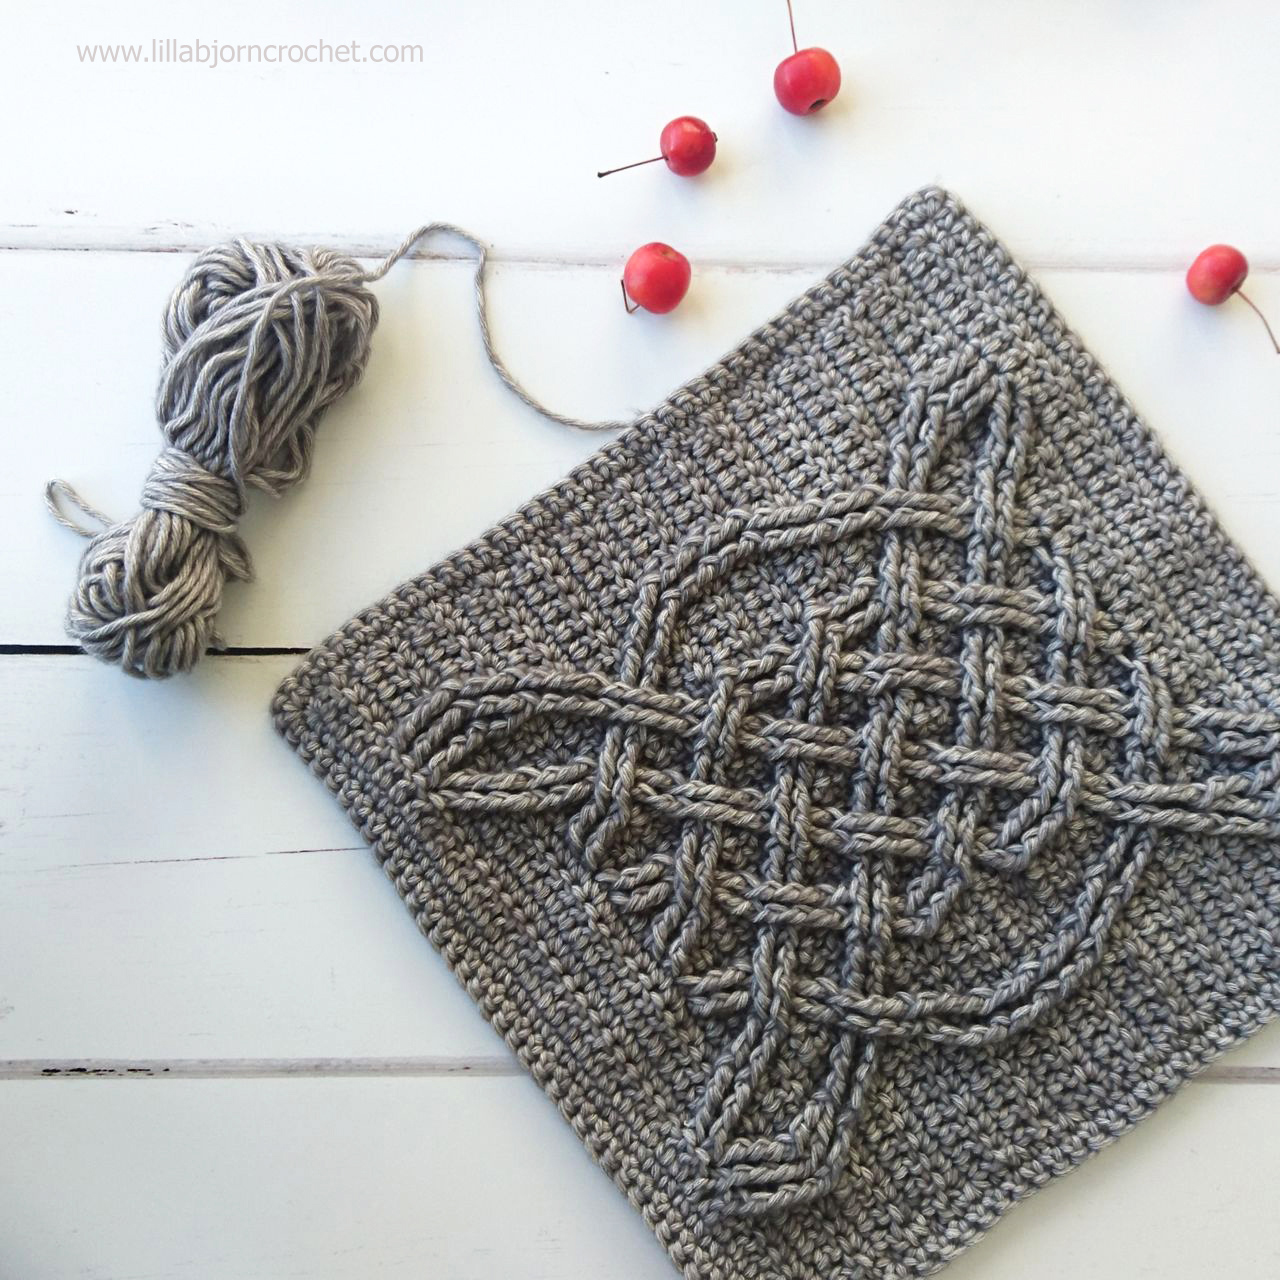 Celtic crochet square - free pattern by Lilla Bjorn